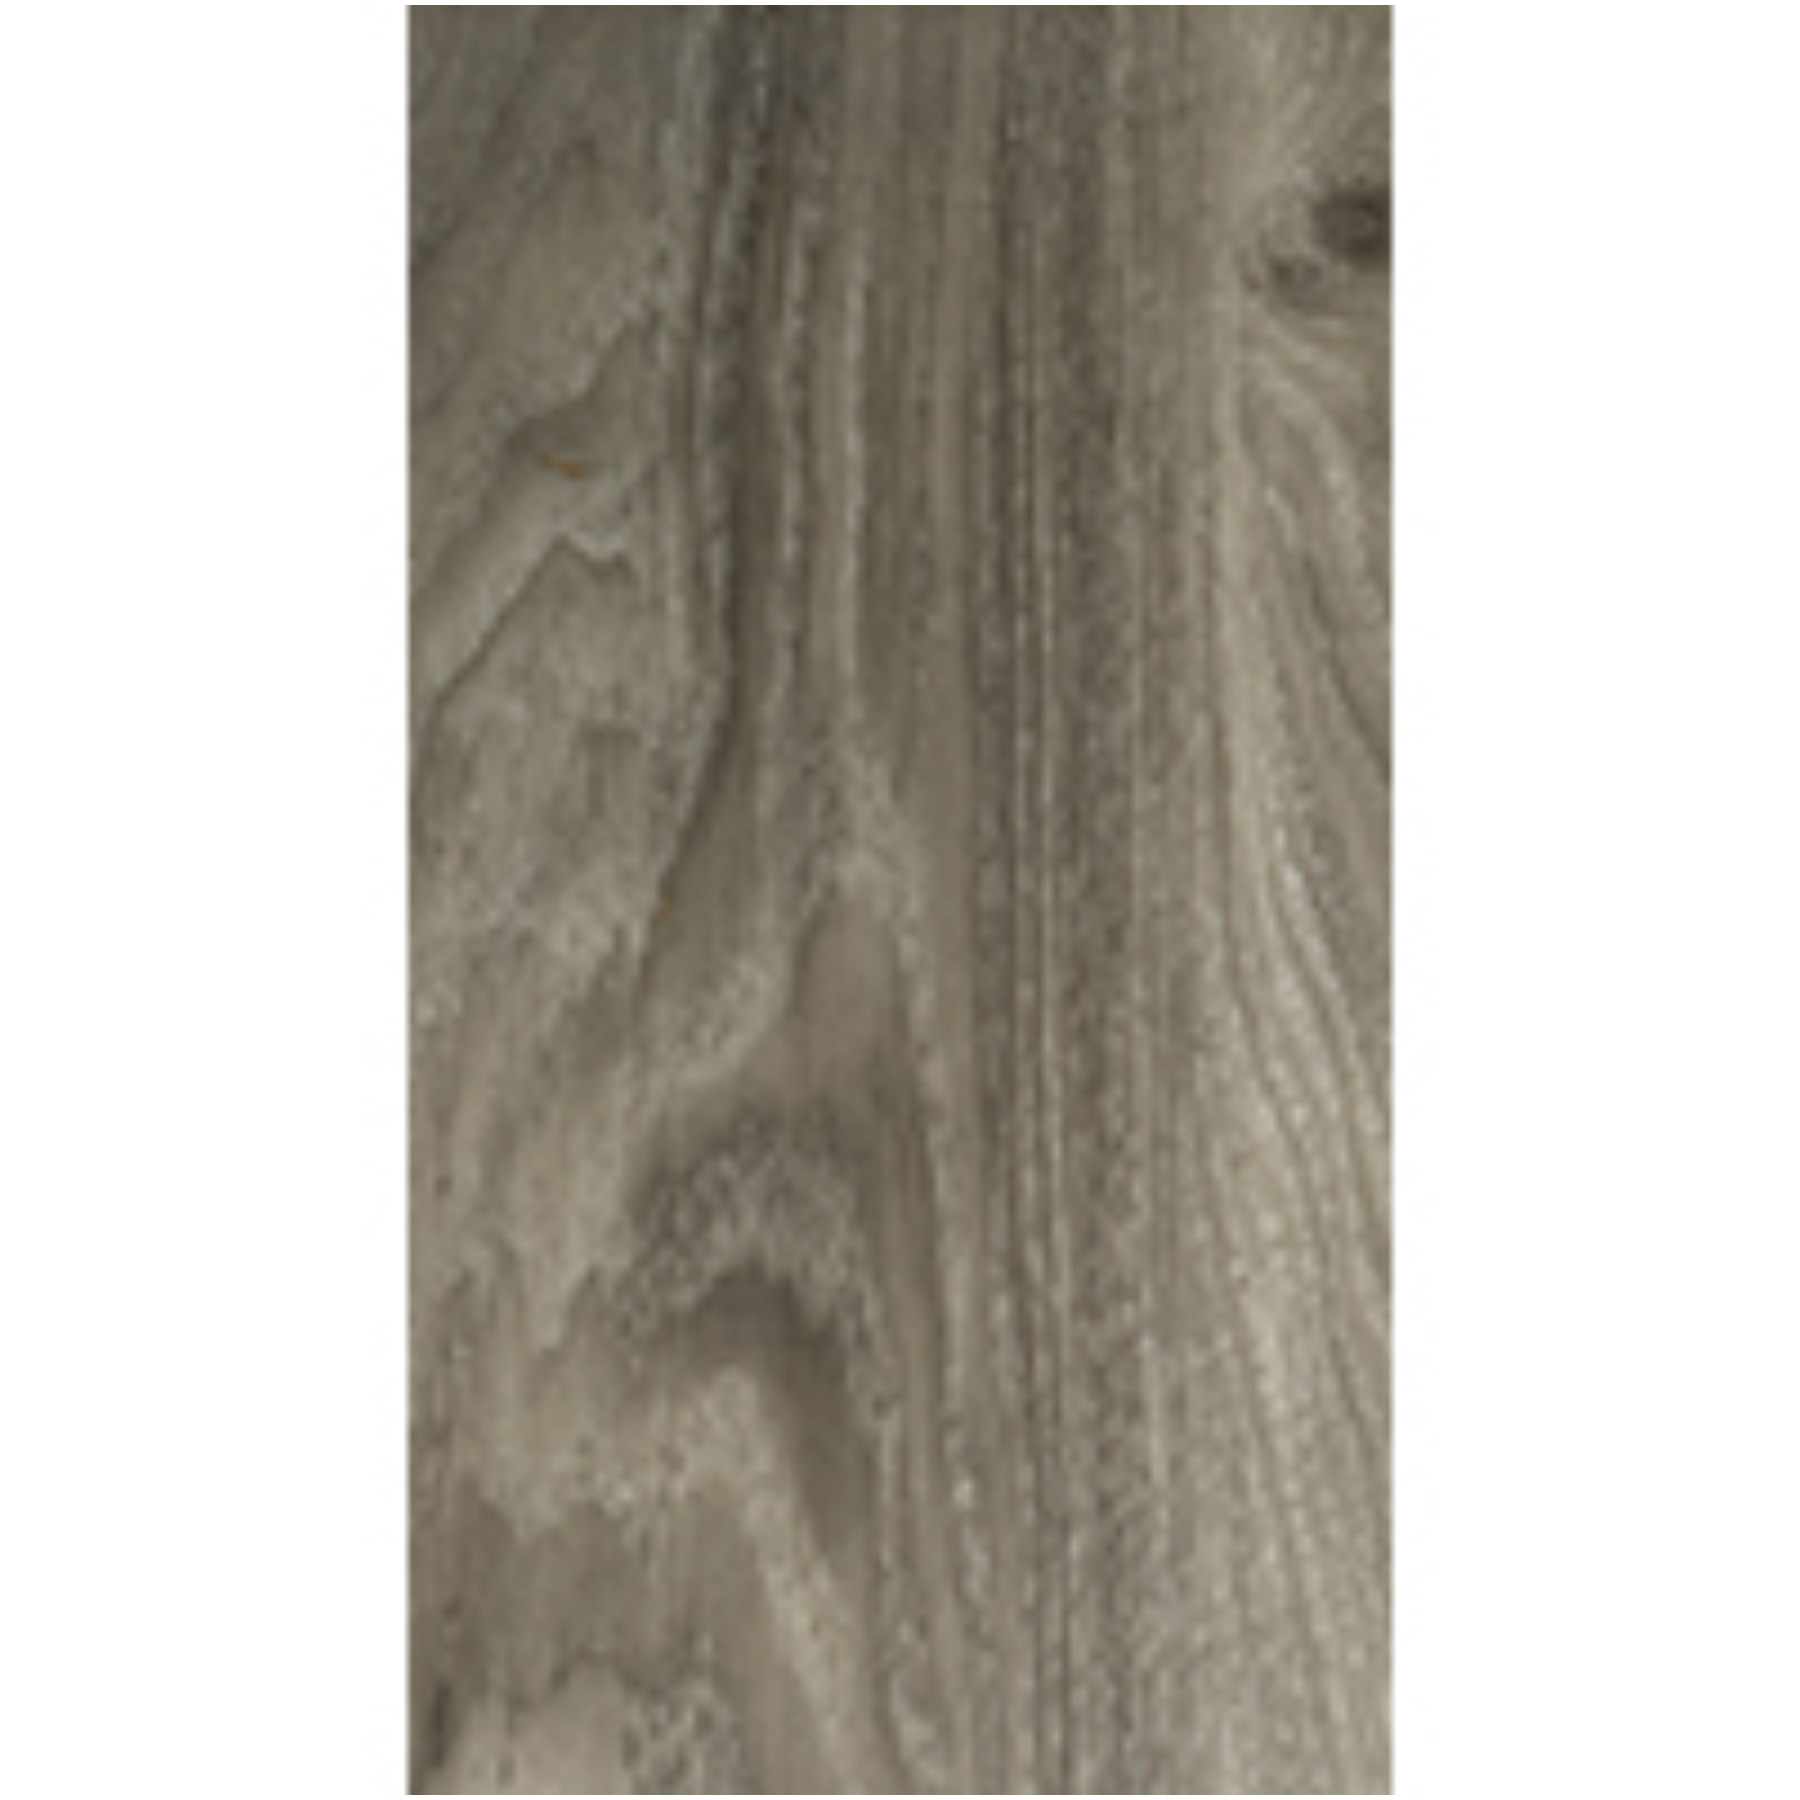 Courey International 21231304 Waterproof Flooring, 48 in L x 5.6 in W x 7.2 mm T, 20.37 sq-ft, Brush Ash